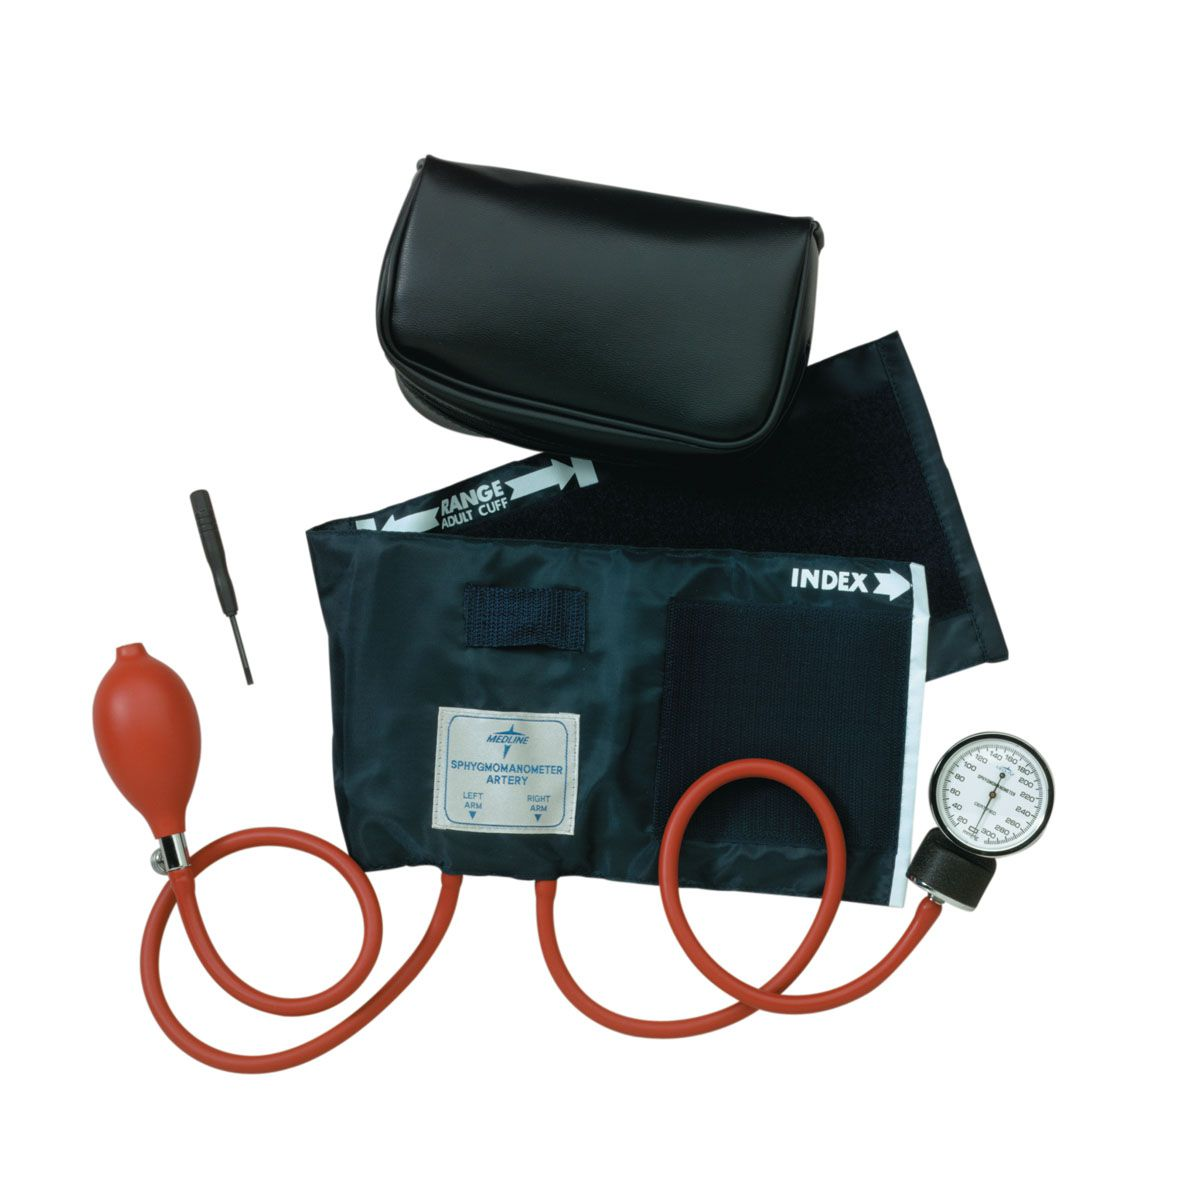 Neoprene Handheld Aneroid Sphygmomanometer - Hand Held, Lrg Adult, Large Adult, Each